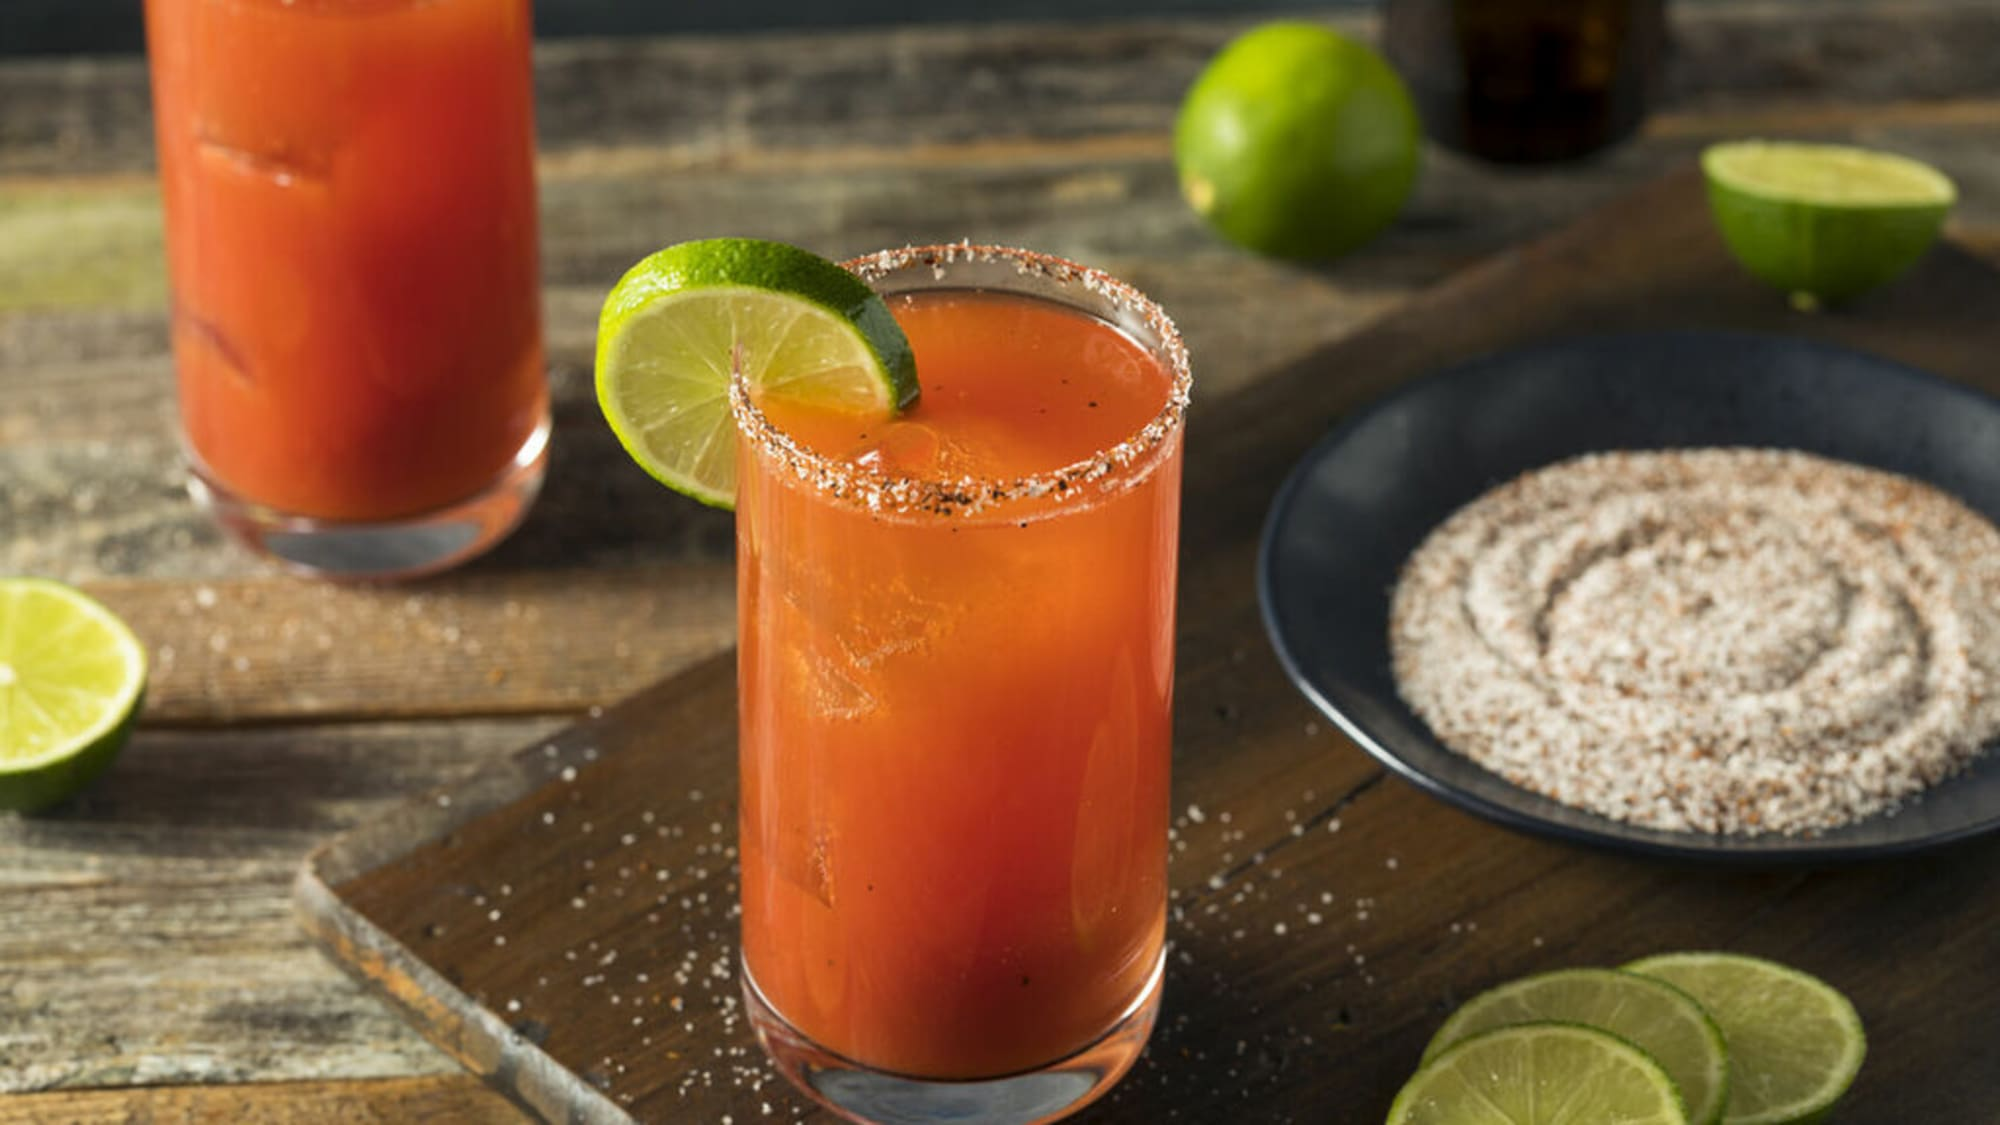 The perfect Michelada could become your summer drink